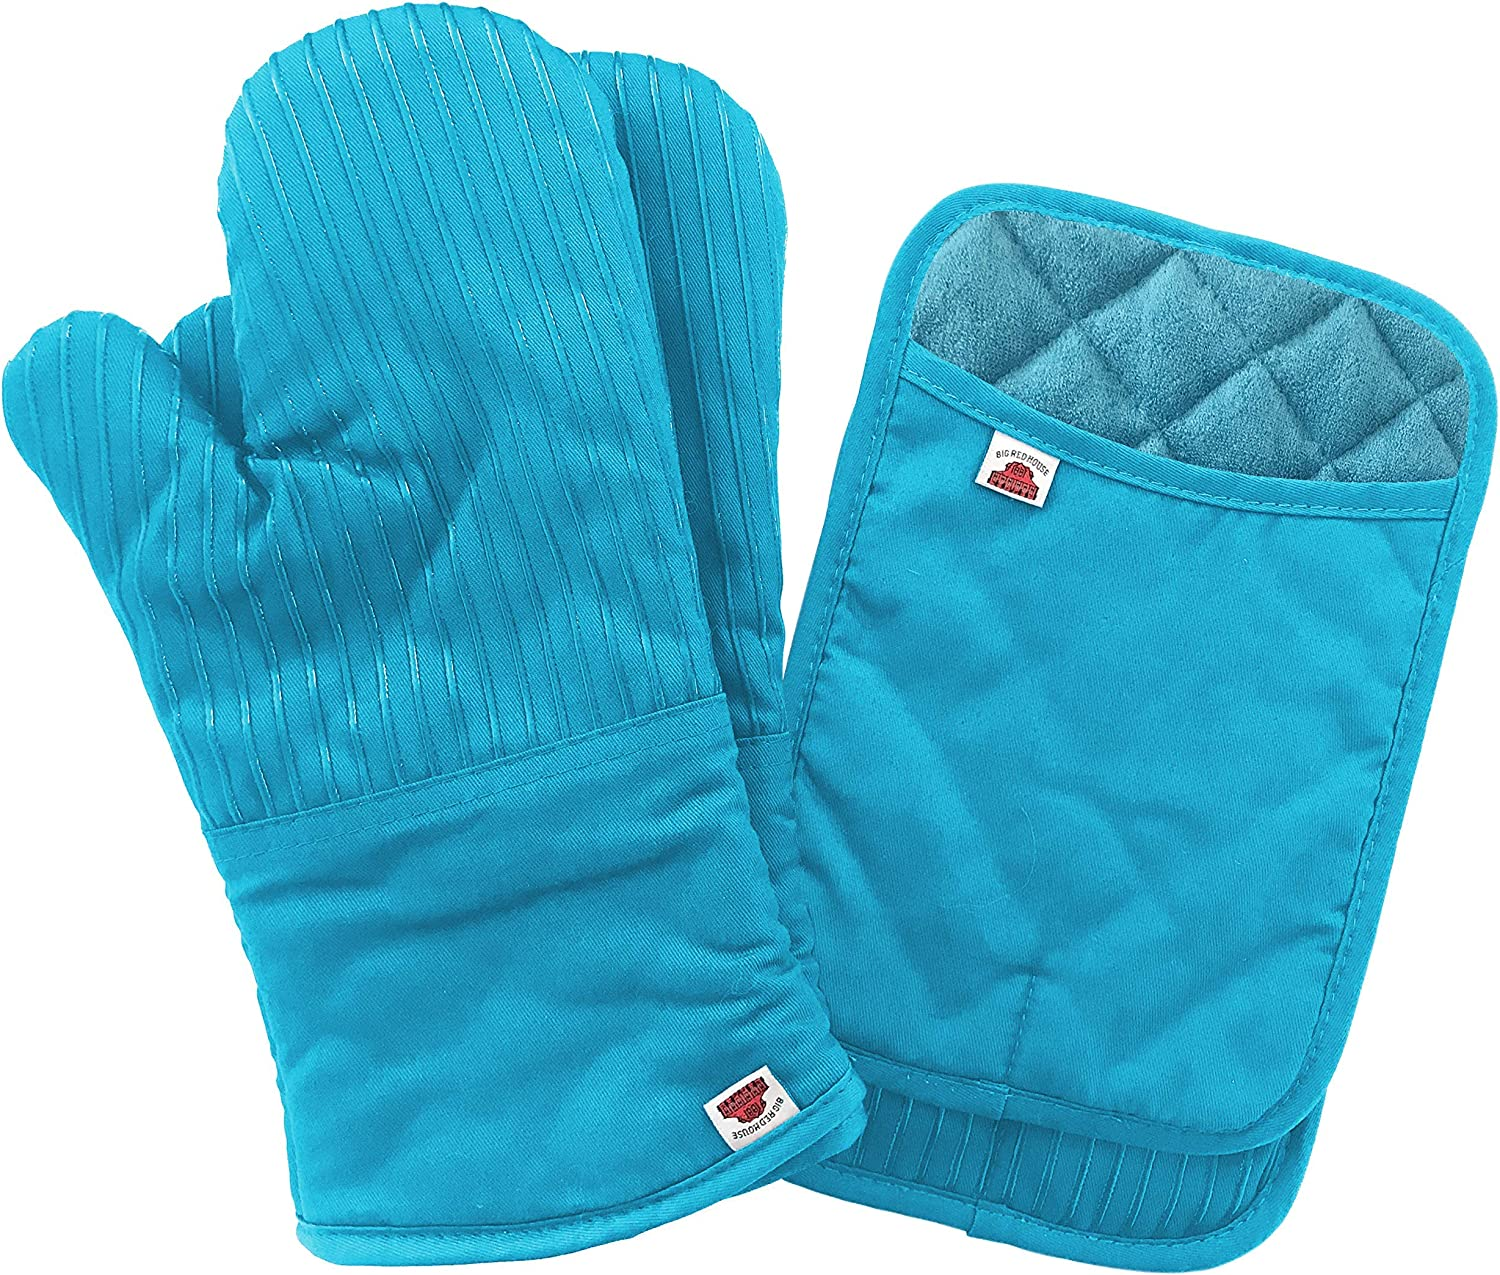 Big Red House Oven Mitts and Pot Holders Sets, with The Heat Resistance of Silicone and Flexibility of Cotton, Recycled Cotton Infill, Terrycloth Lining, 480 F Heat Resistant Pair Turquoise